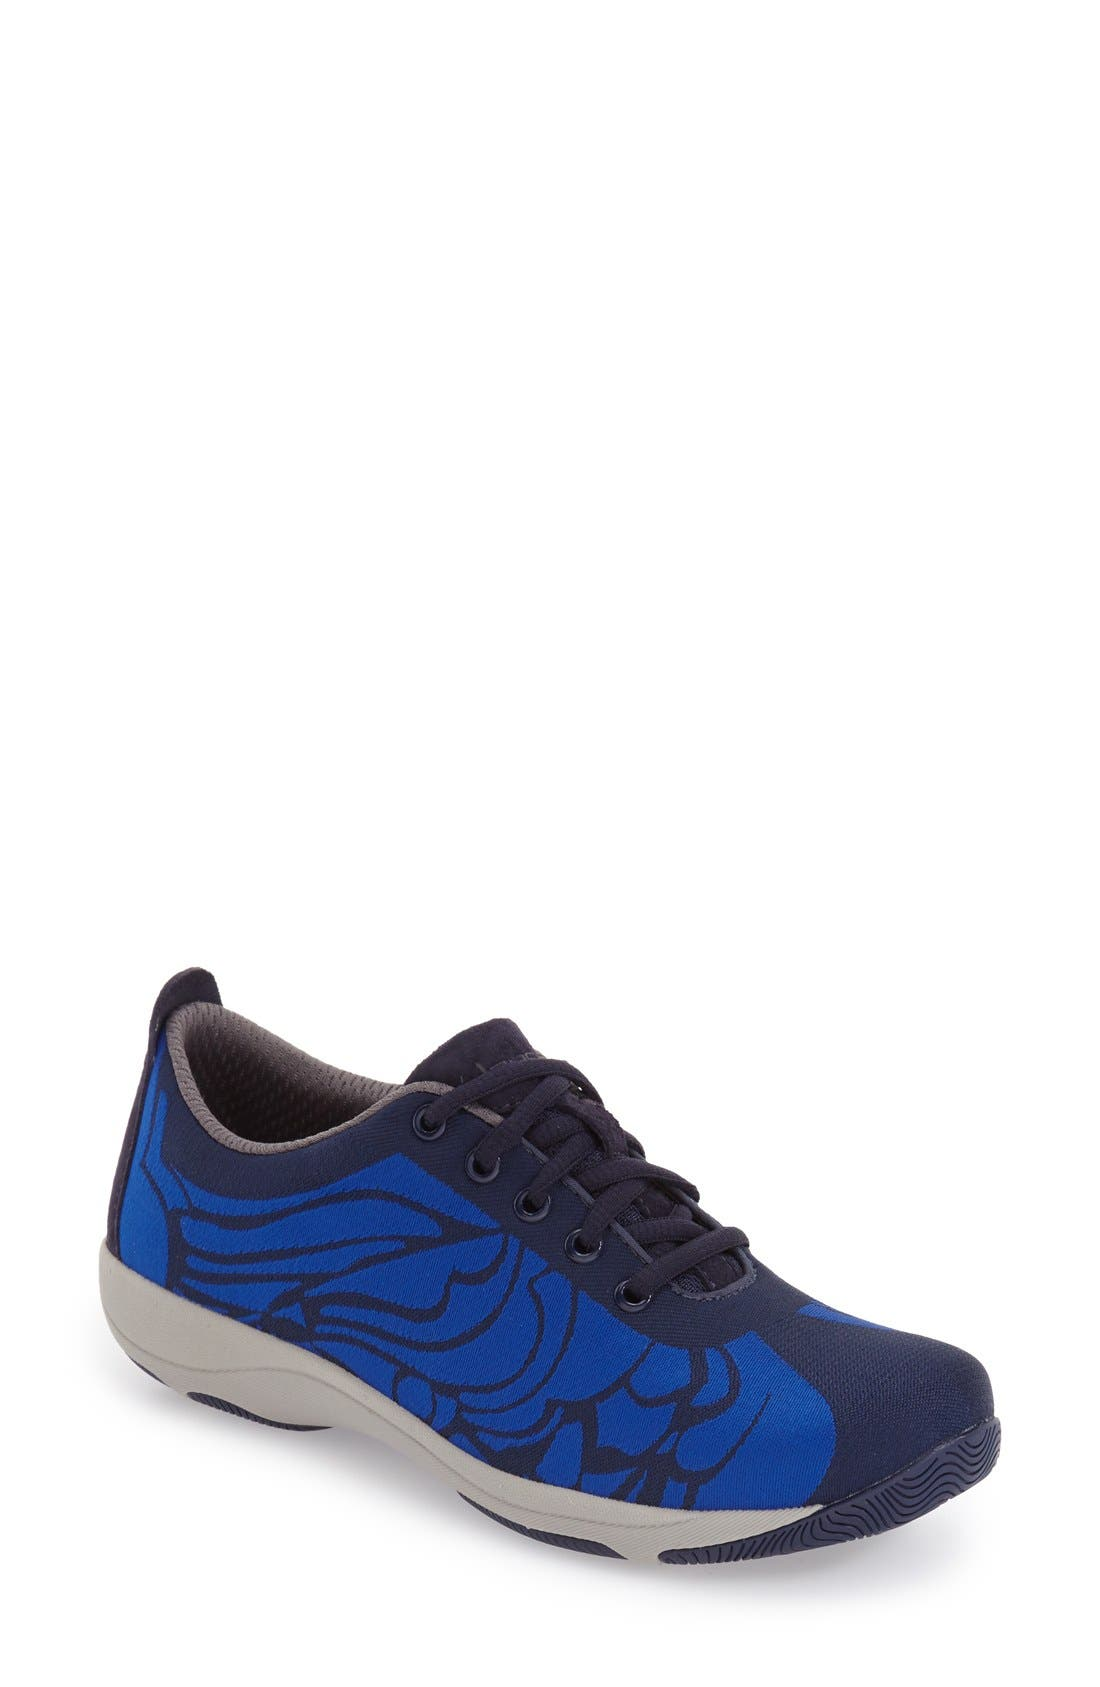 'Hanna' Sneaker,                             Main thumbnail 1, color,                             Blue Fabric